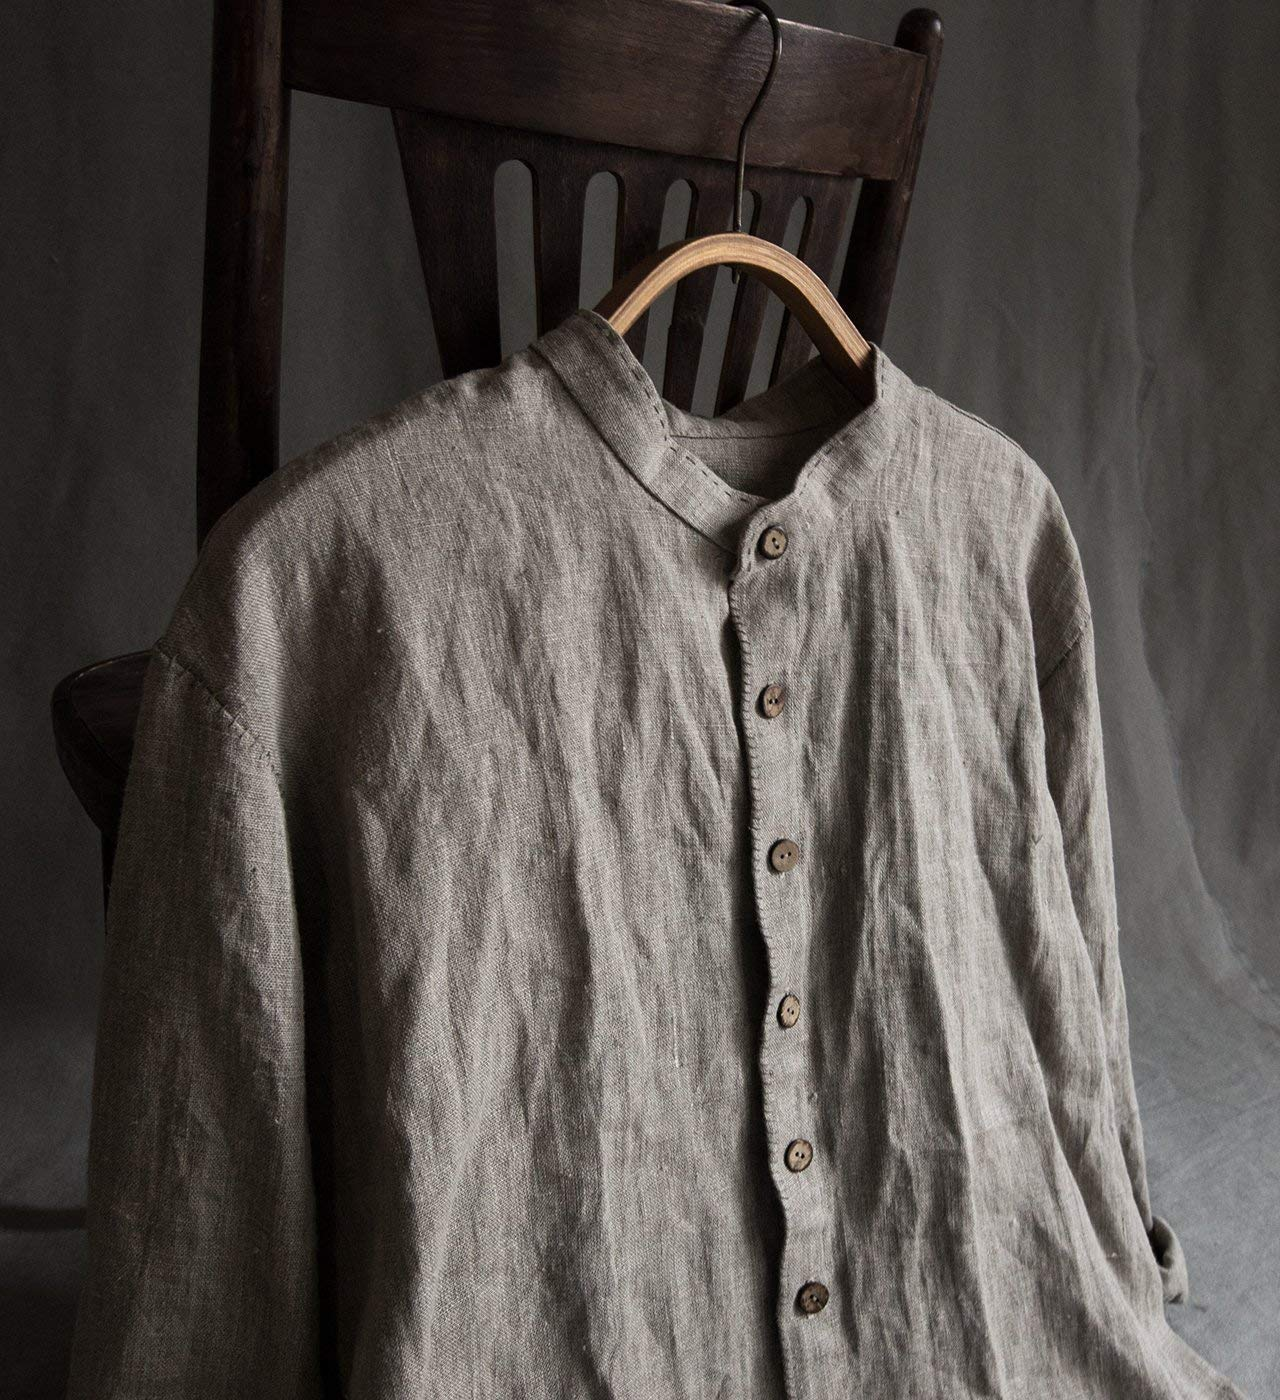 23b253a03d Get Quotations · Linen men s clothing linen men s shirt blac shirt for man  grey linen long sleeve shirt linen